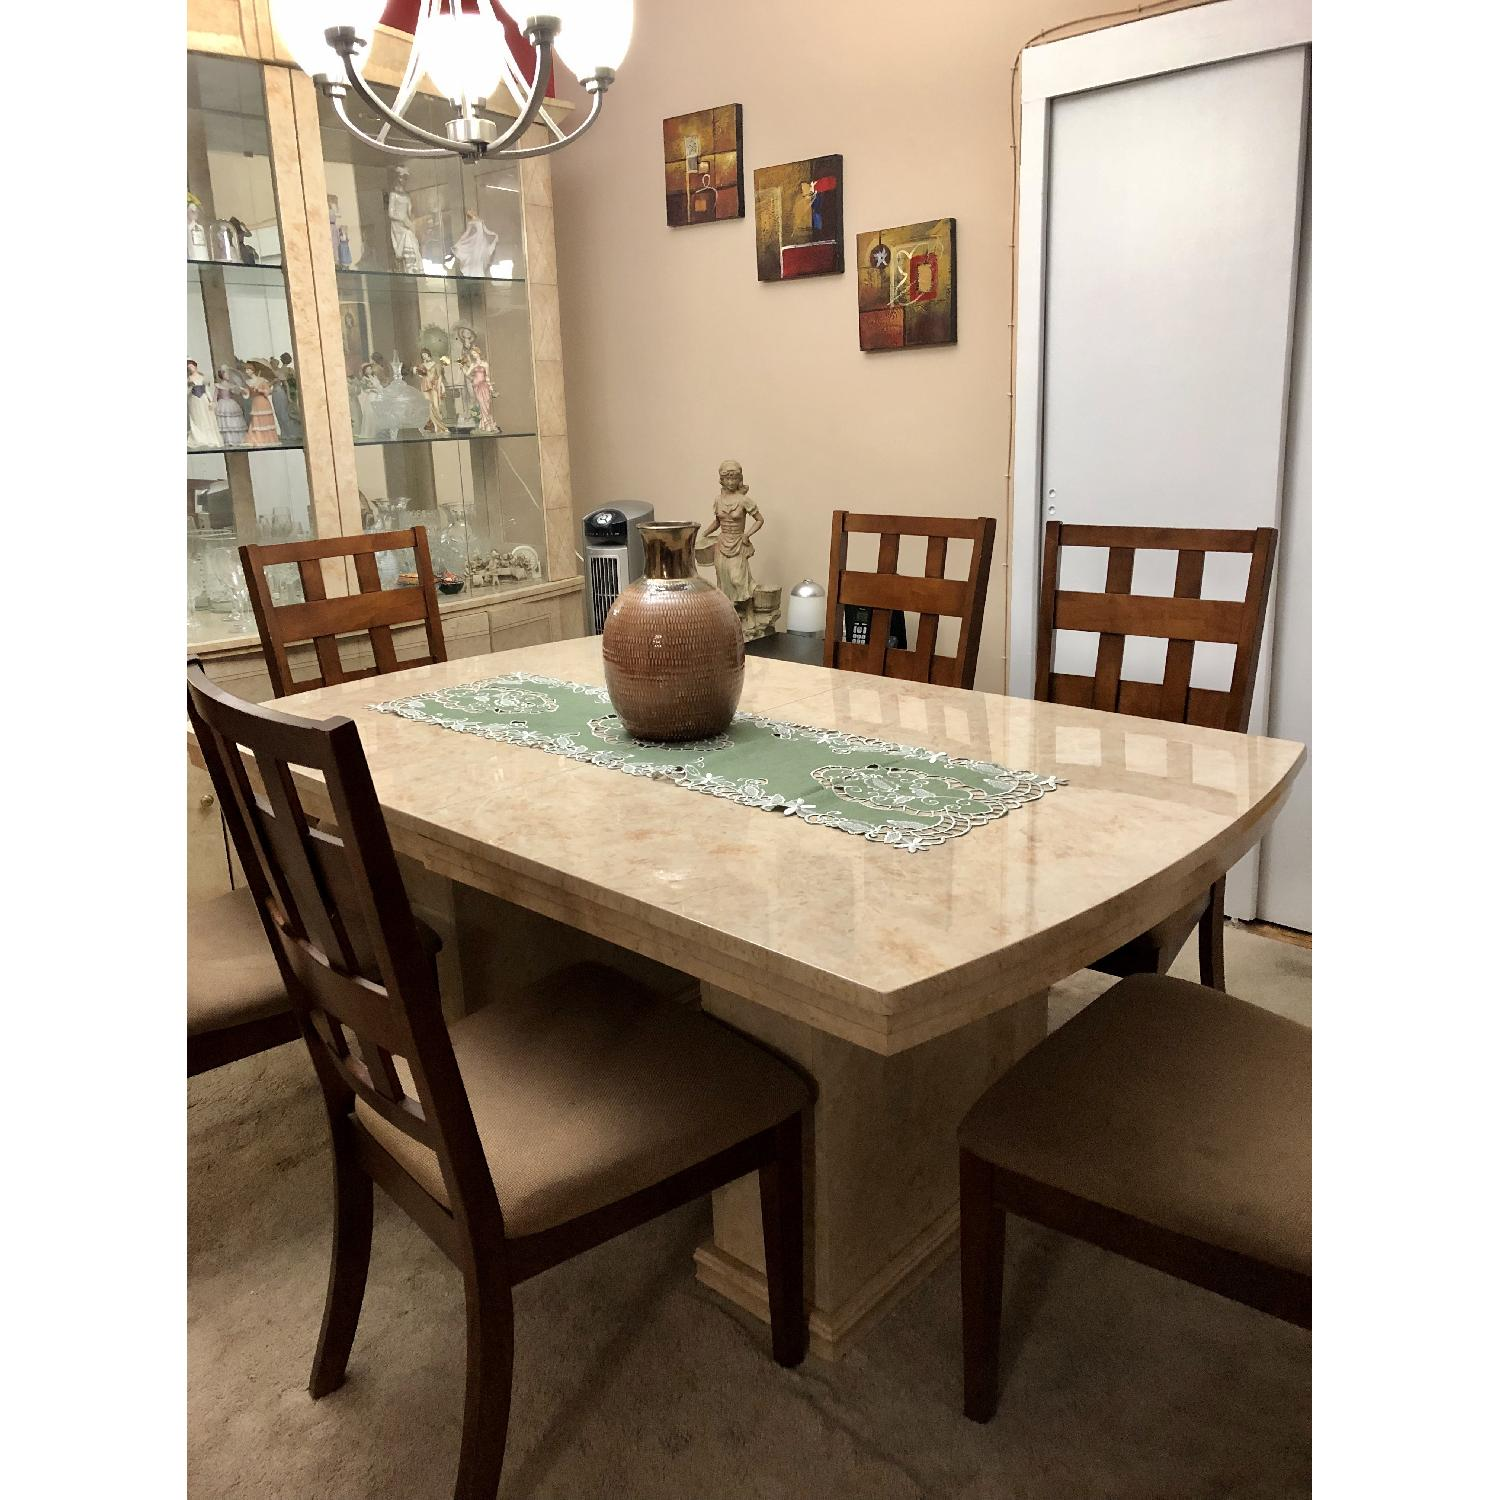 Seaman's Furniture Natural Italian Lacquer Dining Table - image-1